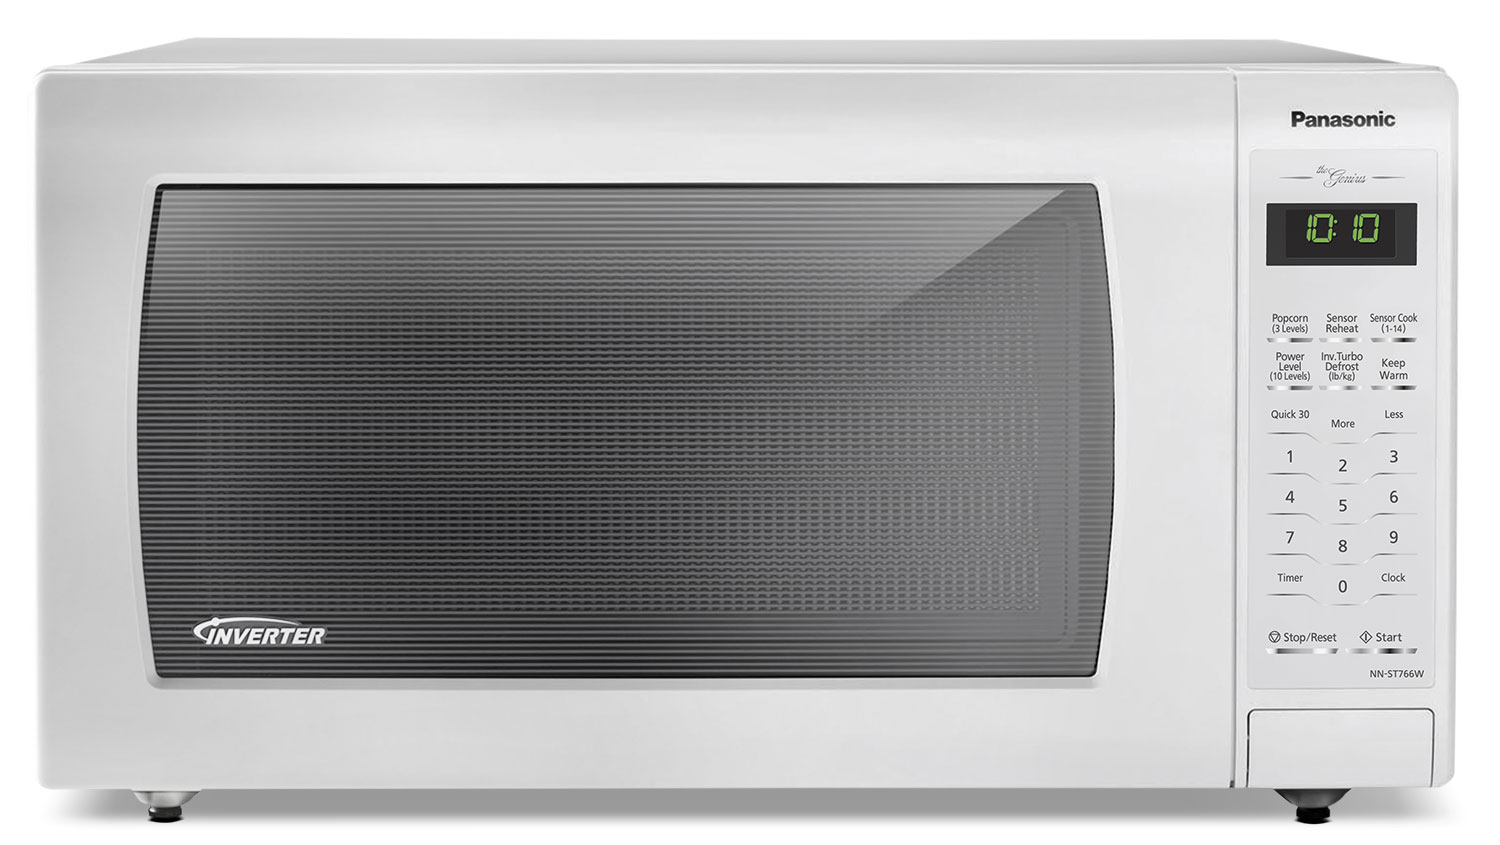 Panasonic Genius® 1.6 Cu. Ft. Countertop Microwave – NN-ST766W